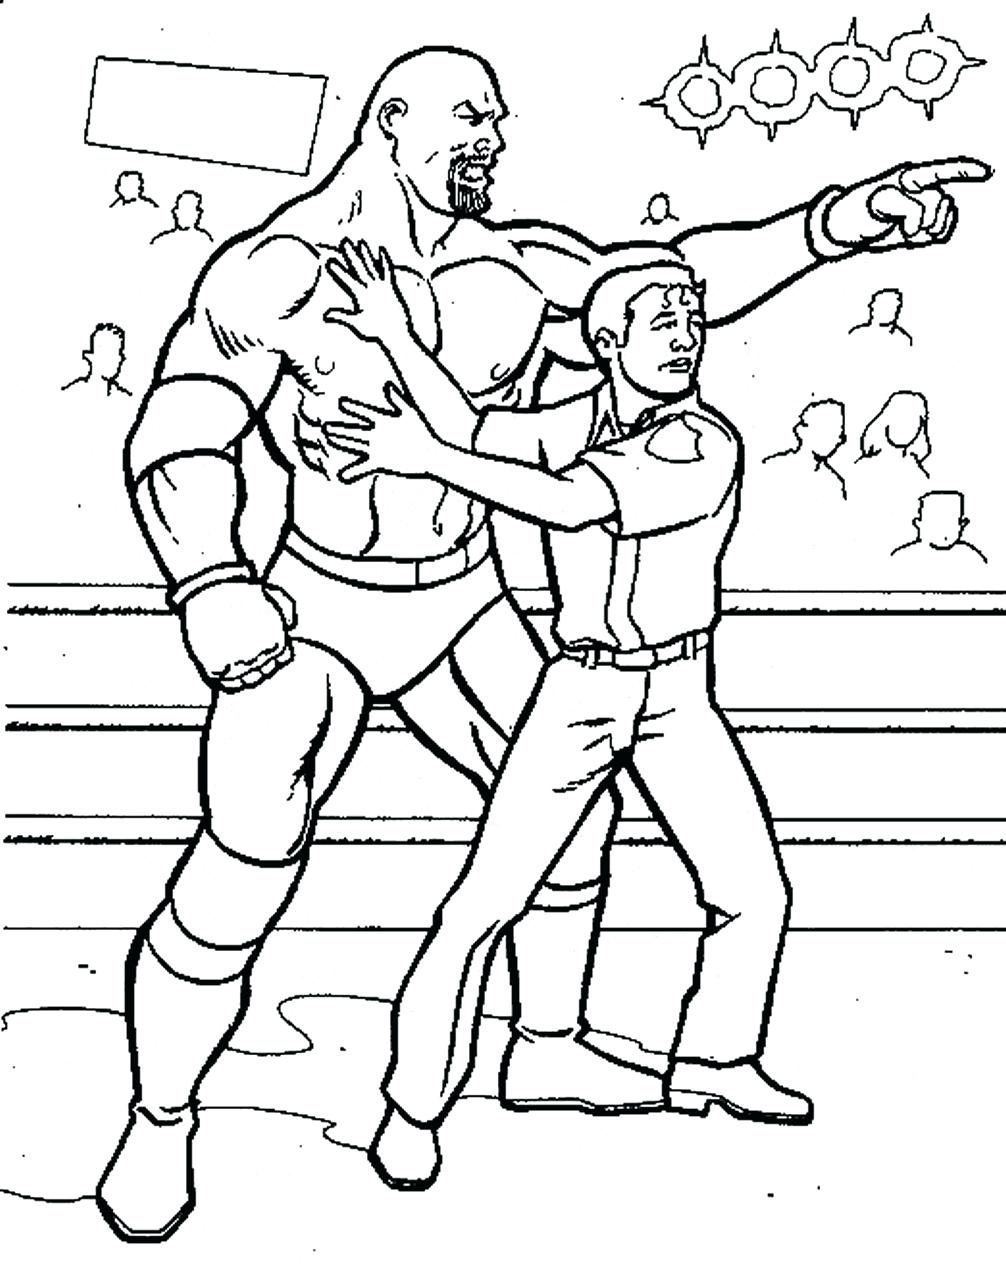 1006x1268 Coloring Pages Wwe Wrestling Raw Logo Belts Wwe Wrestling Coloring